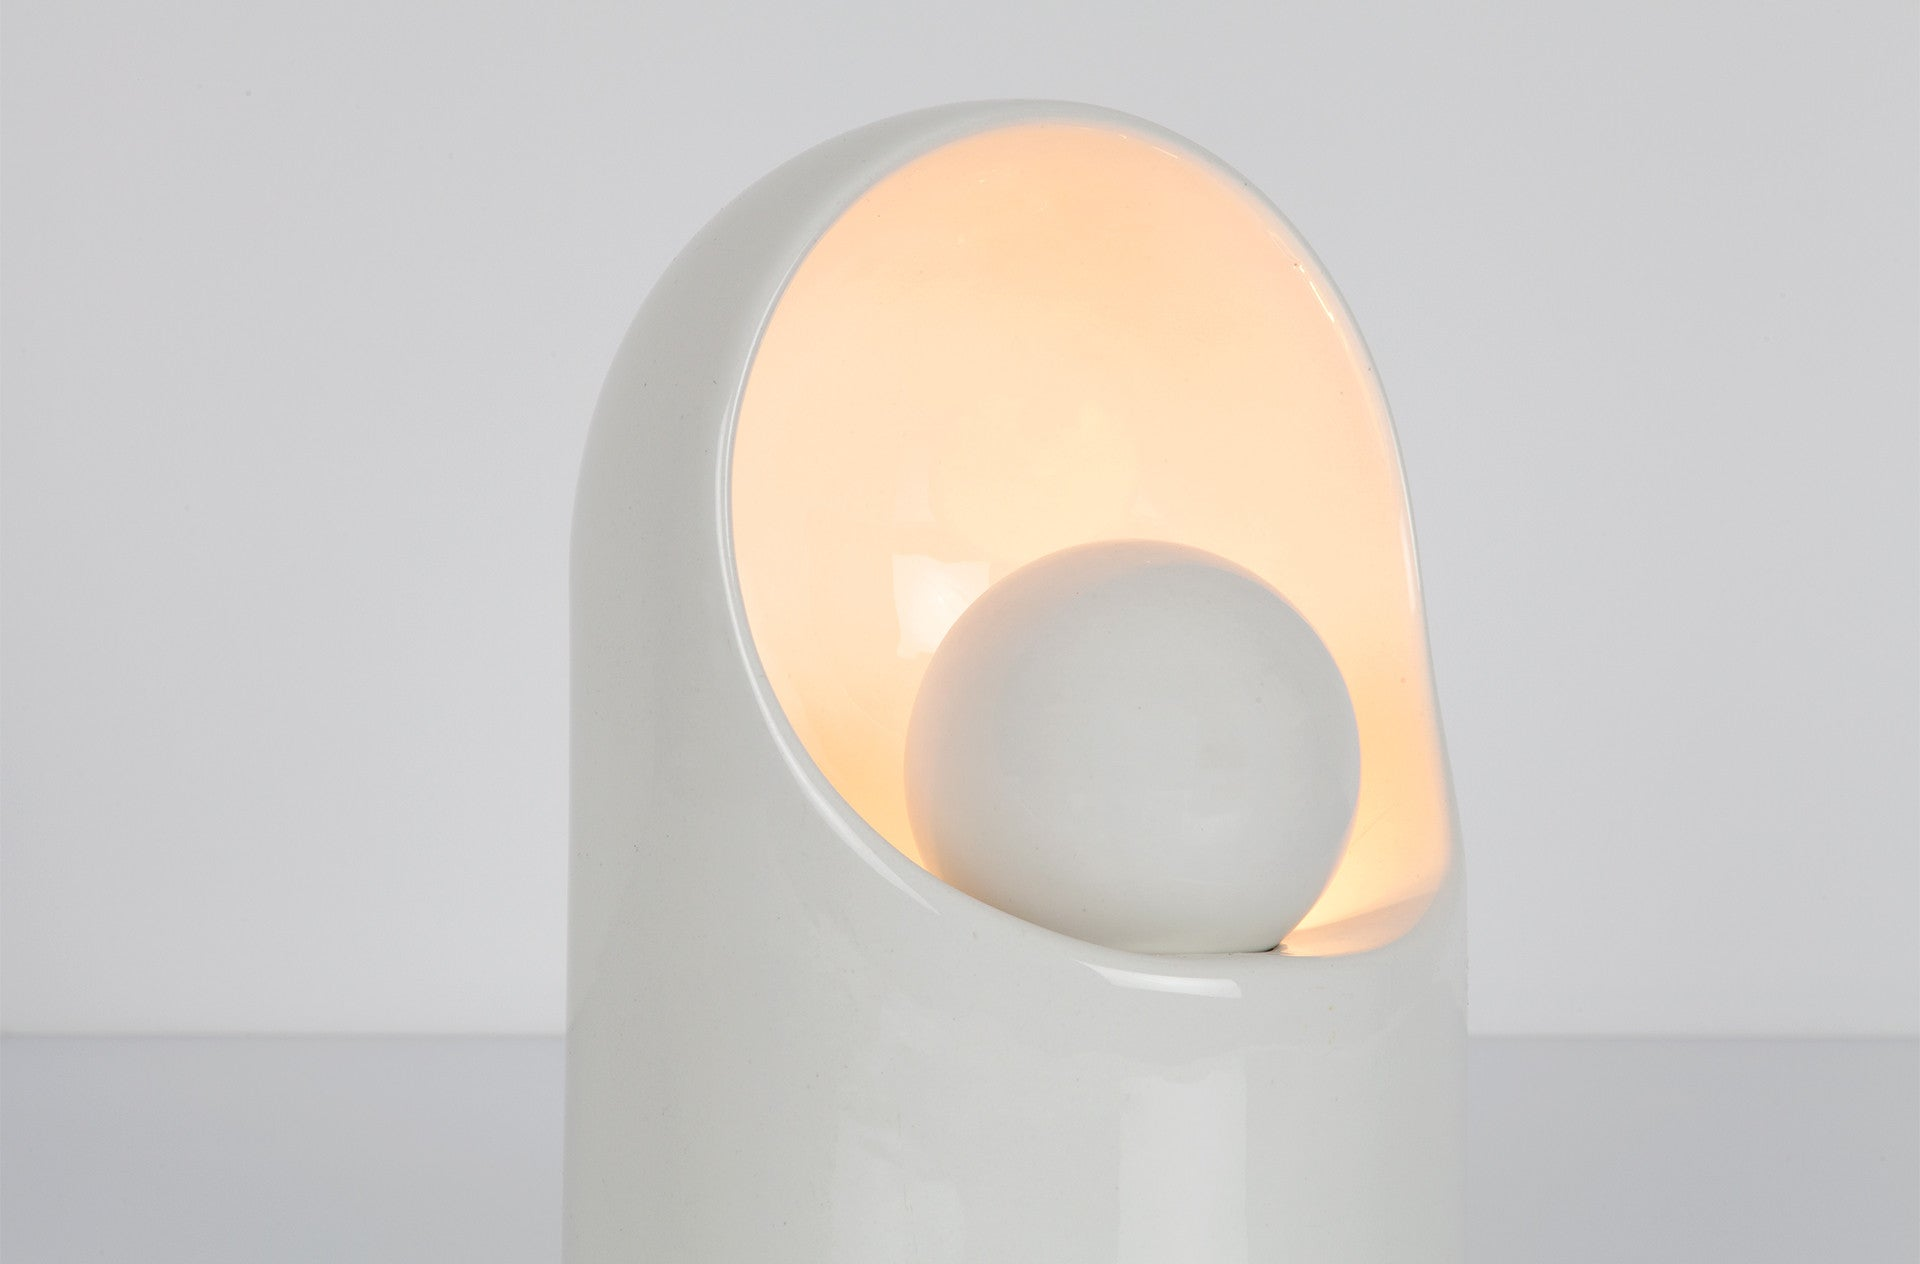 Ceramic Table Light by Marcello Cuneo